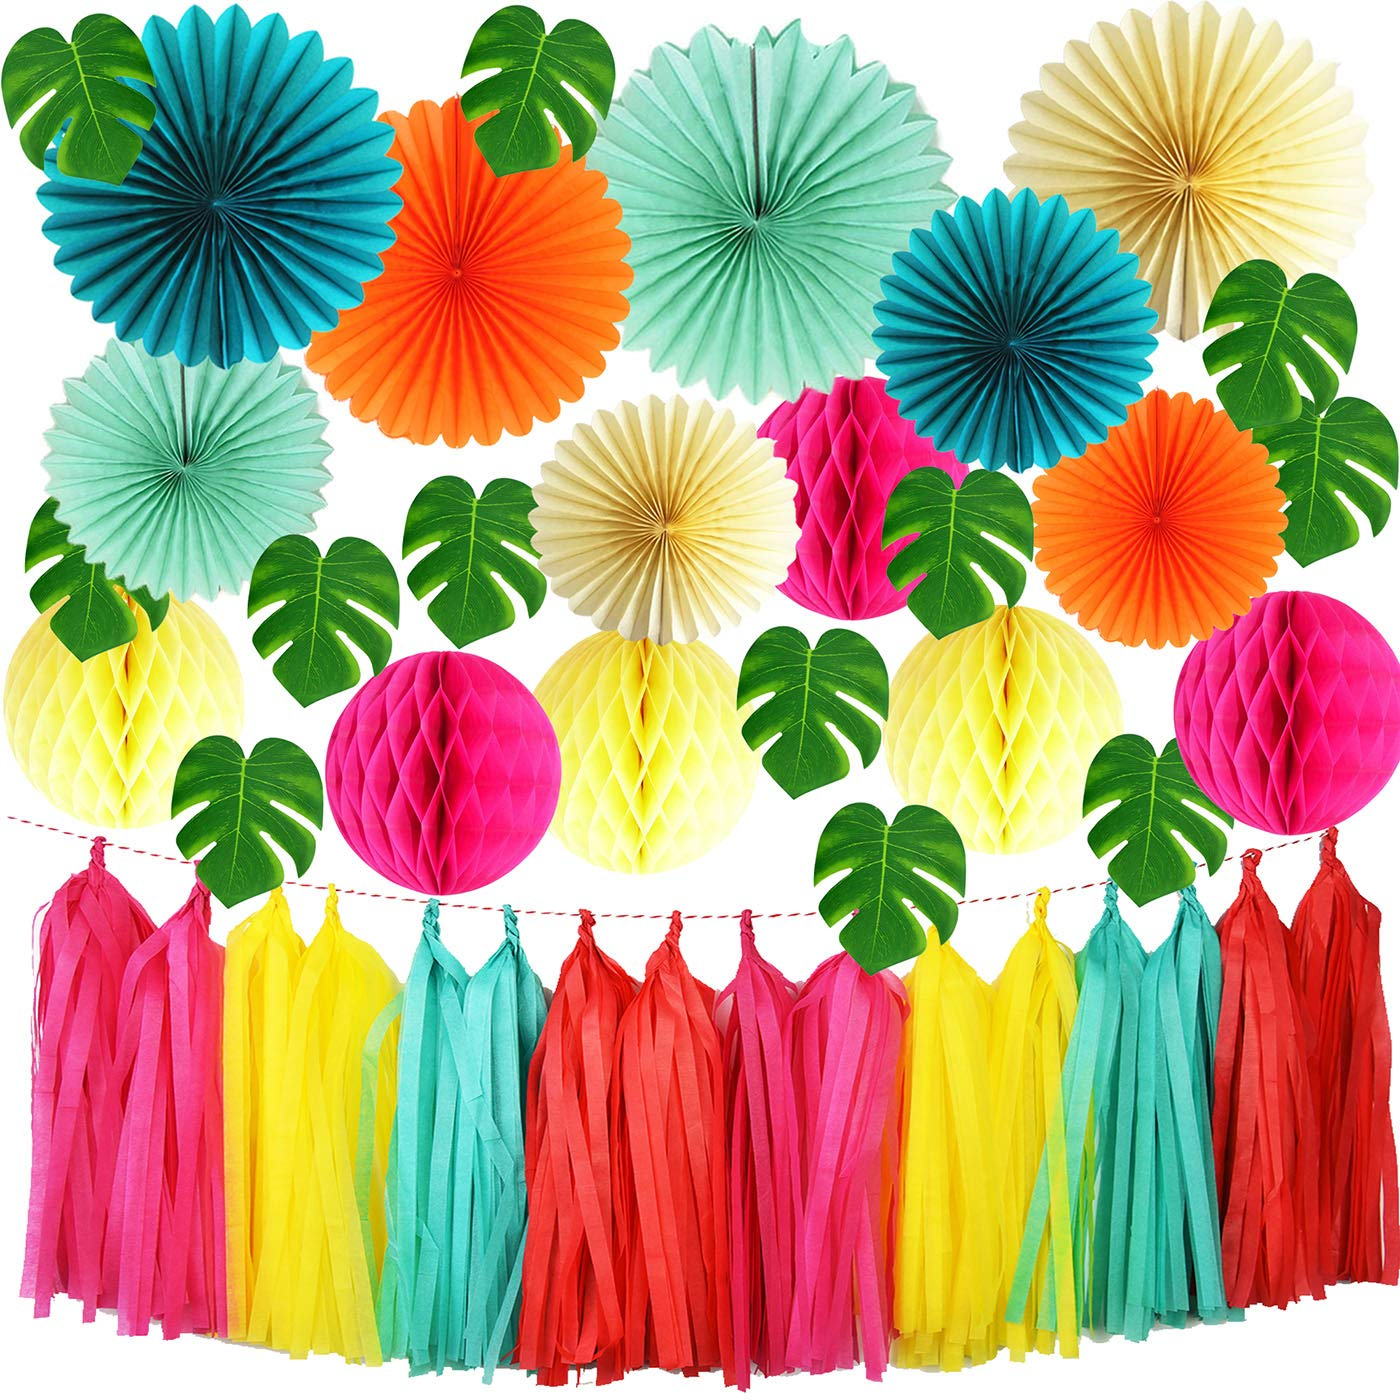 Qian's Party Tropical Party, Luau Party, Hawaiian Party Theme, Summer Party Tropical Palm Leaves, Flamingo Party Decorations, Pool Party, Birthday Party Decorations